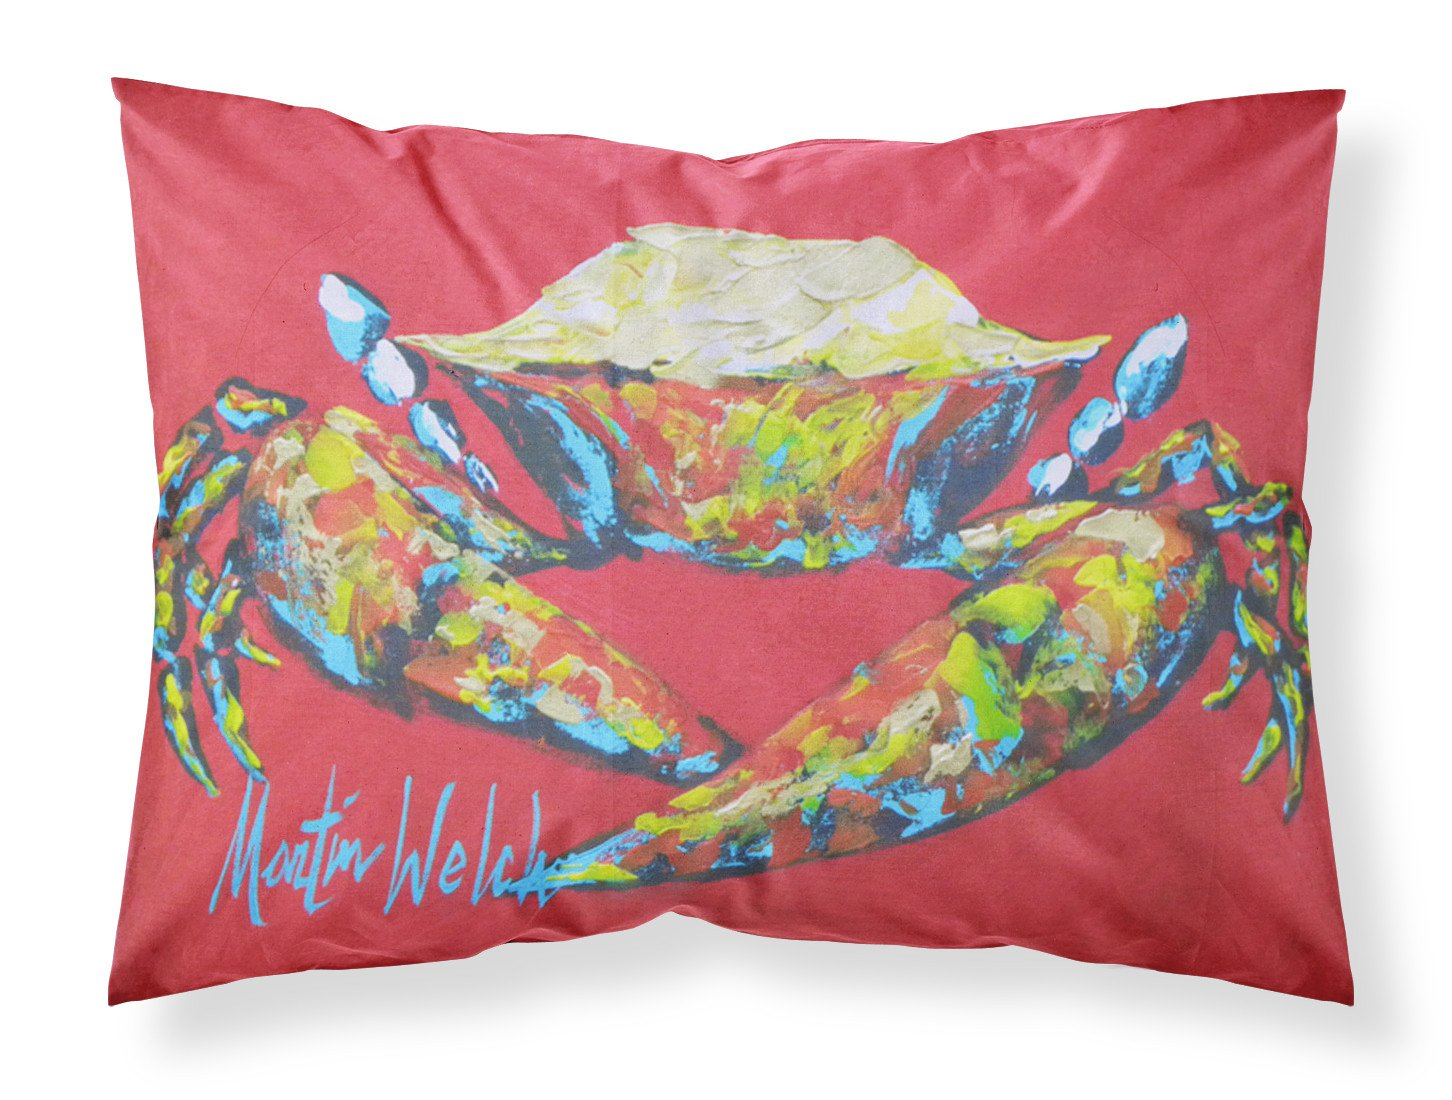 Buy this Crab Seafood One Moisture wicking Fabric standard pillowcase